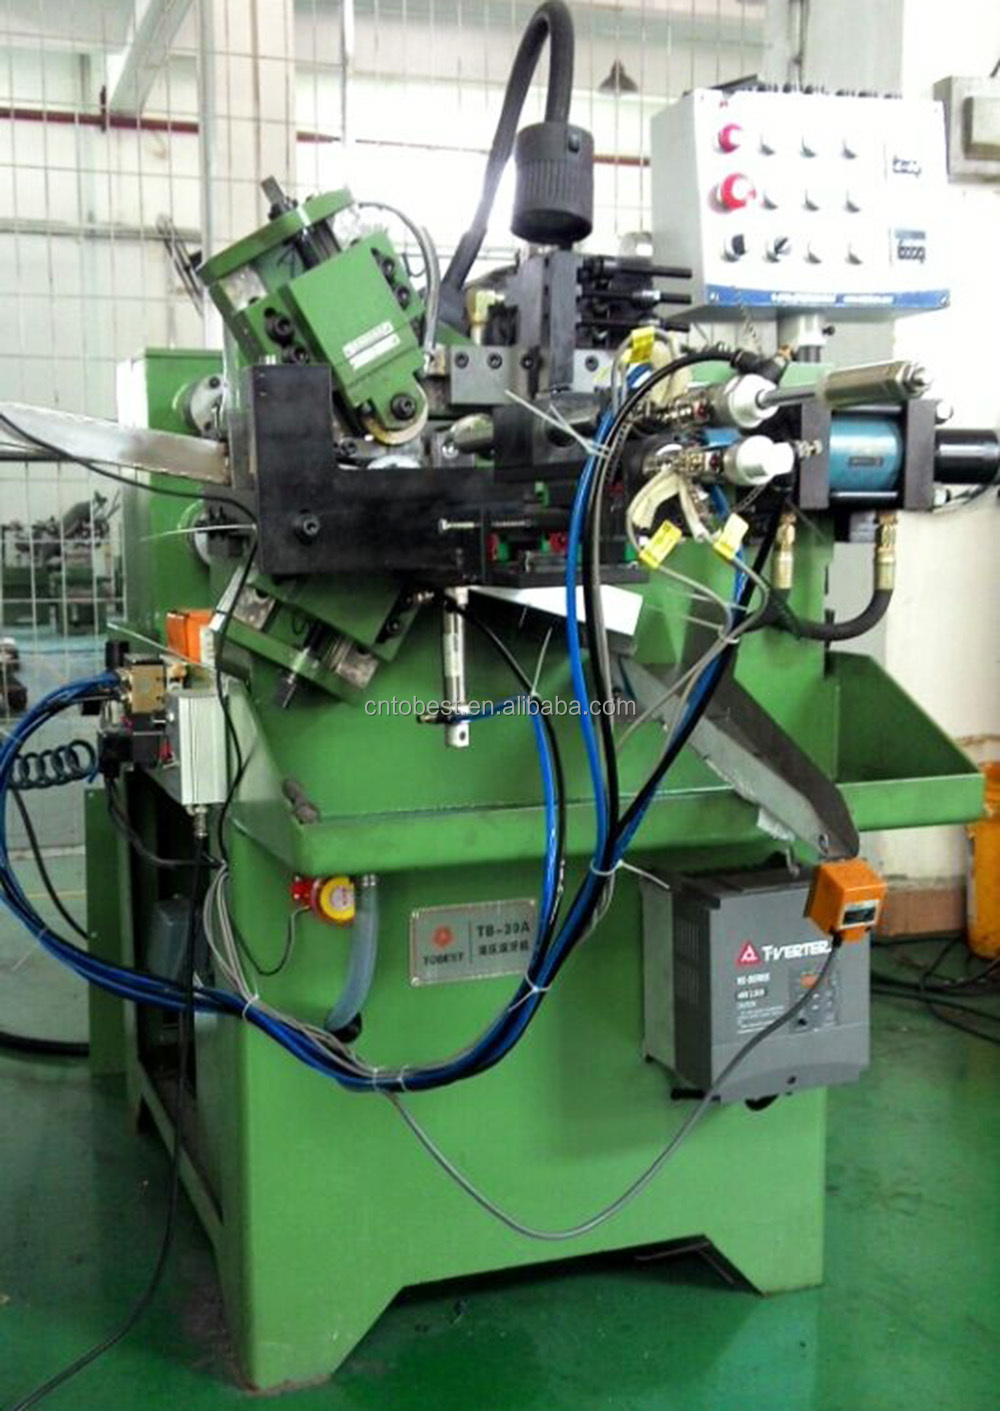 nut screw making machine stainless steel tube thread making machine